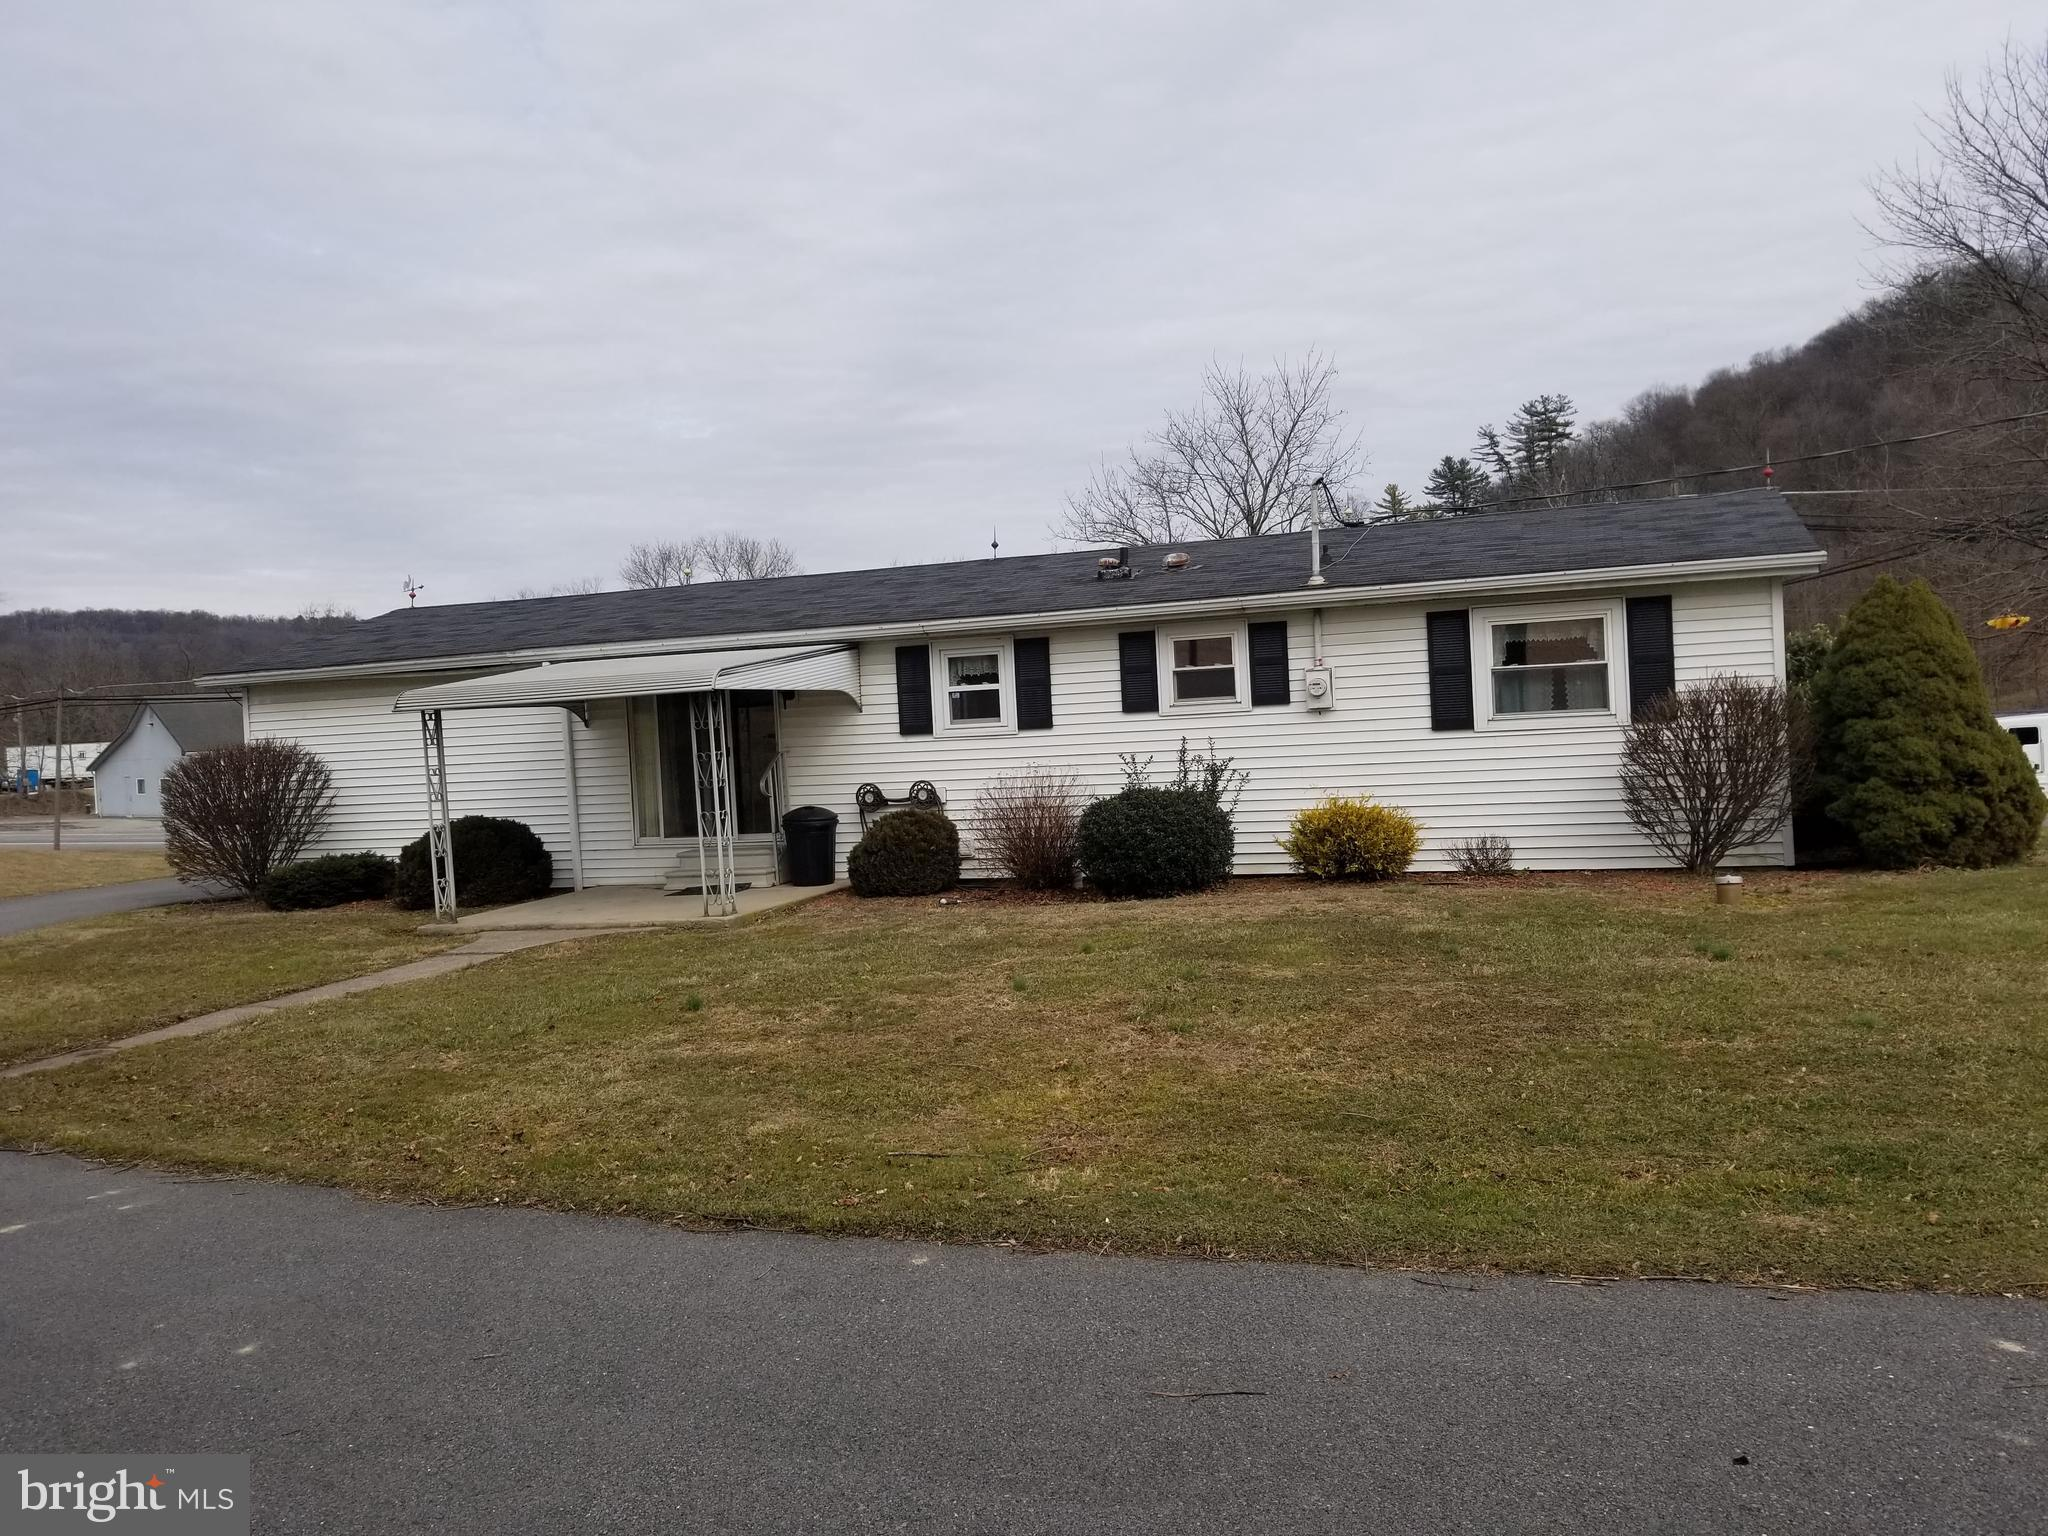 8465 ROUTE 104, MOUNT PLEASANT MILLS, PA 17853